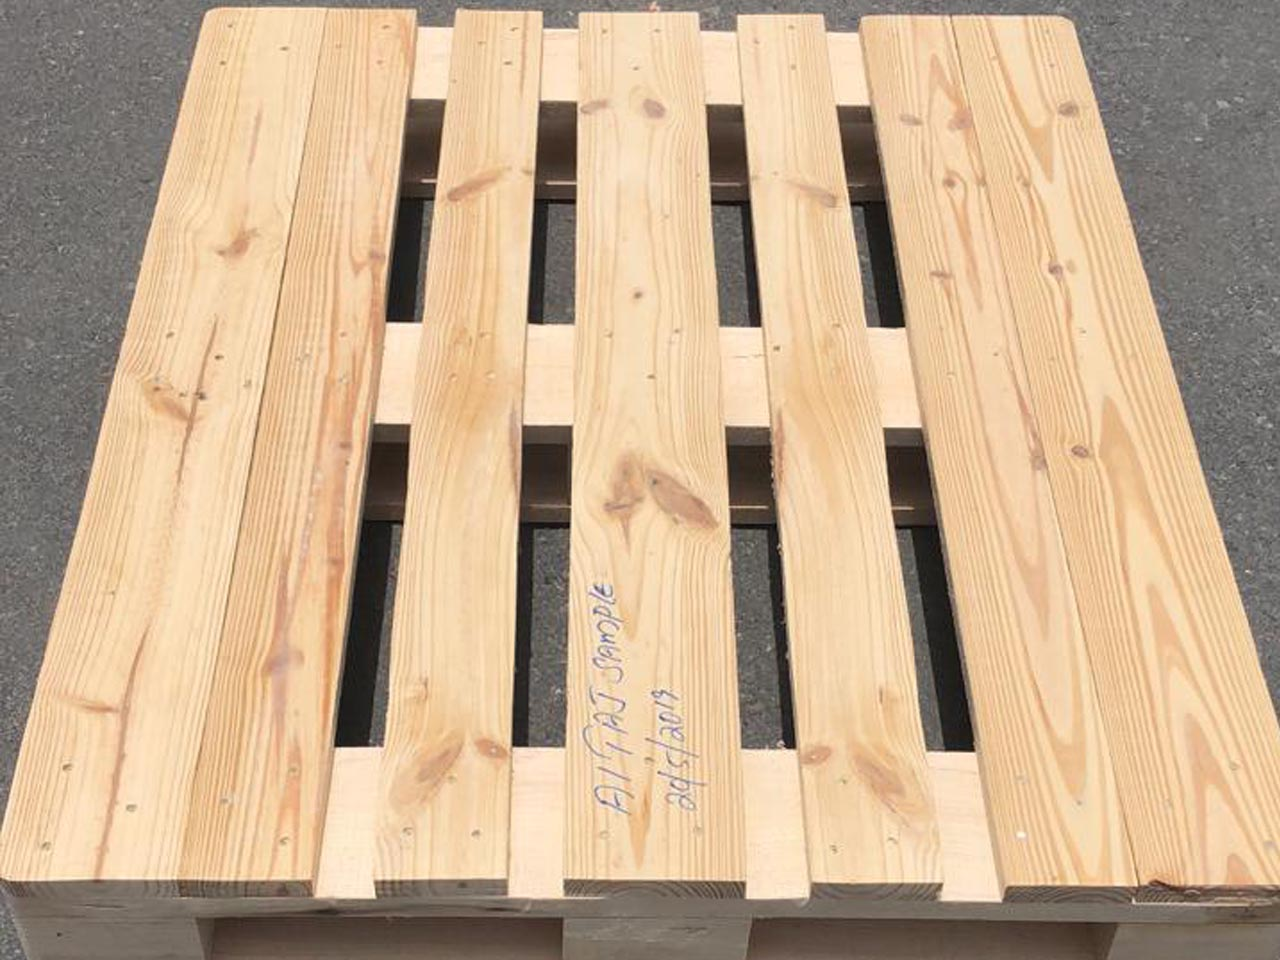 wooden pallet manufacturers in uae